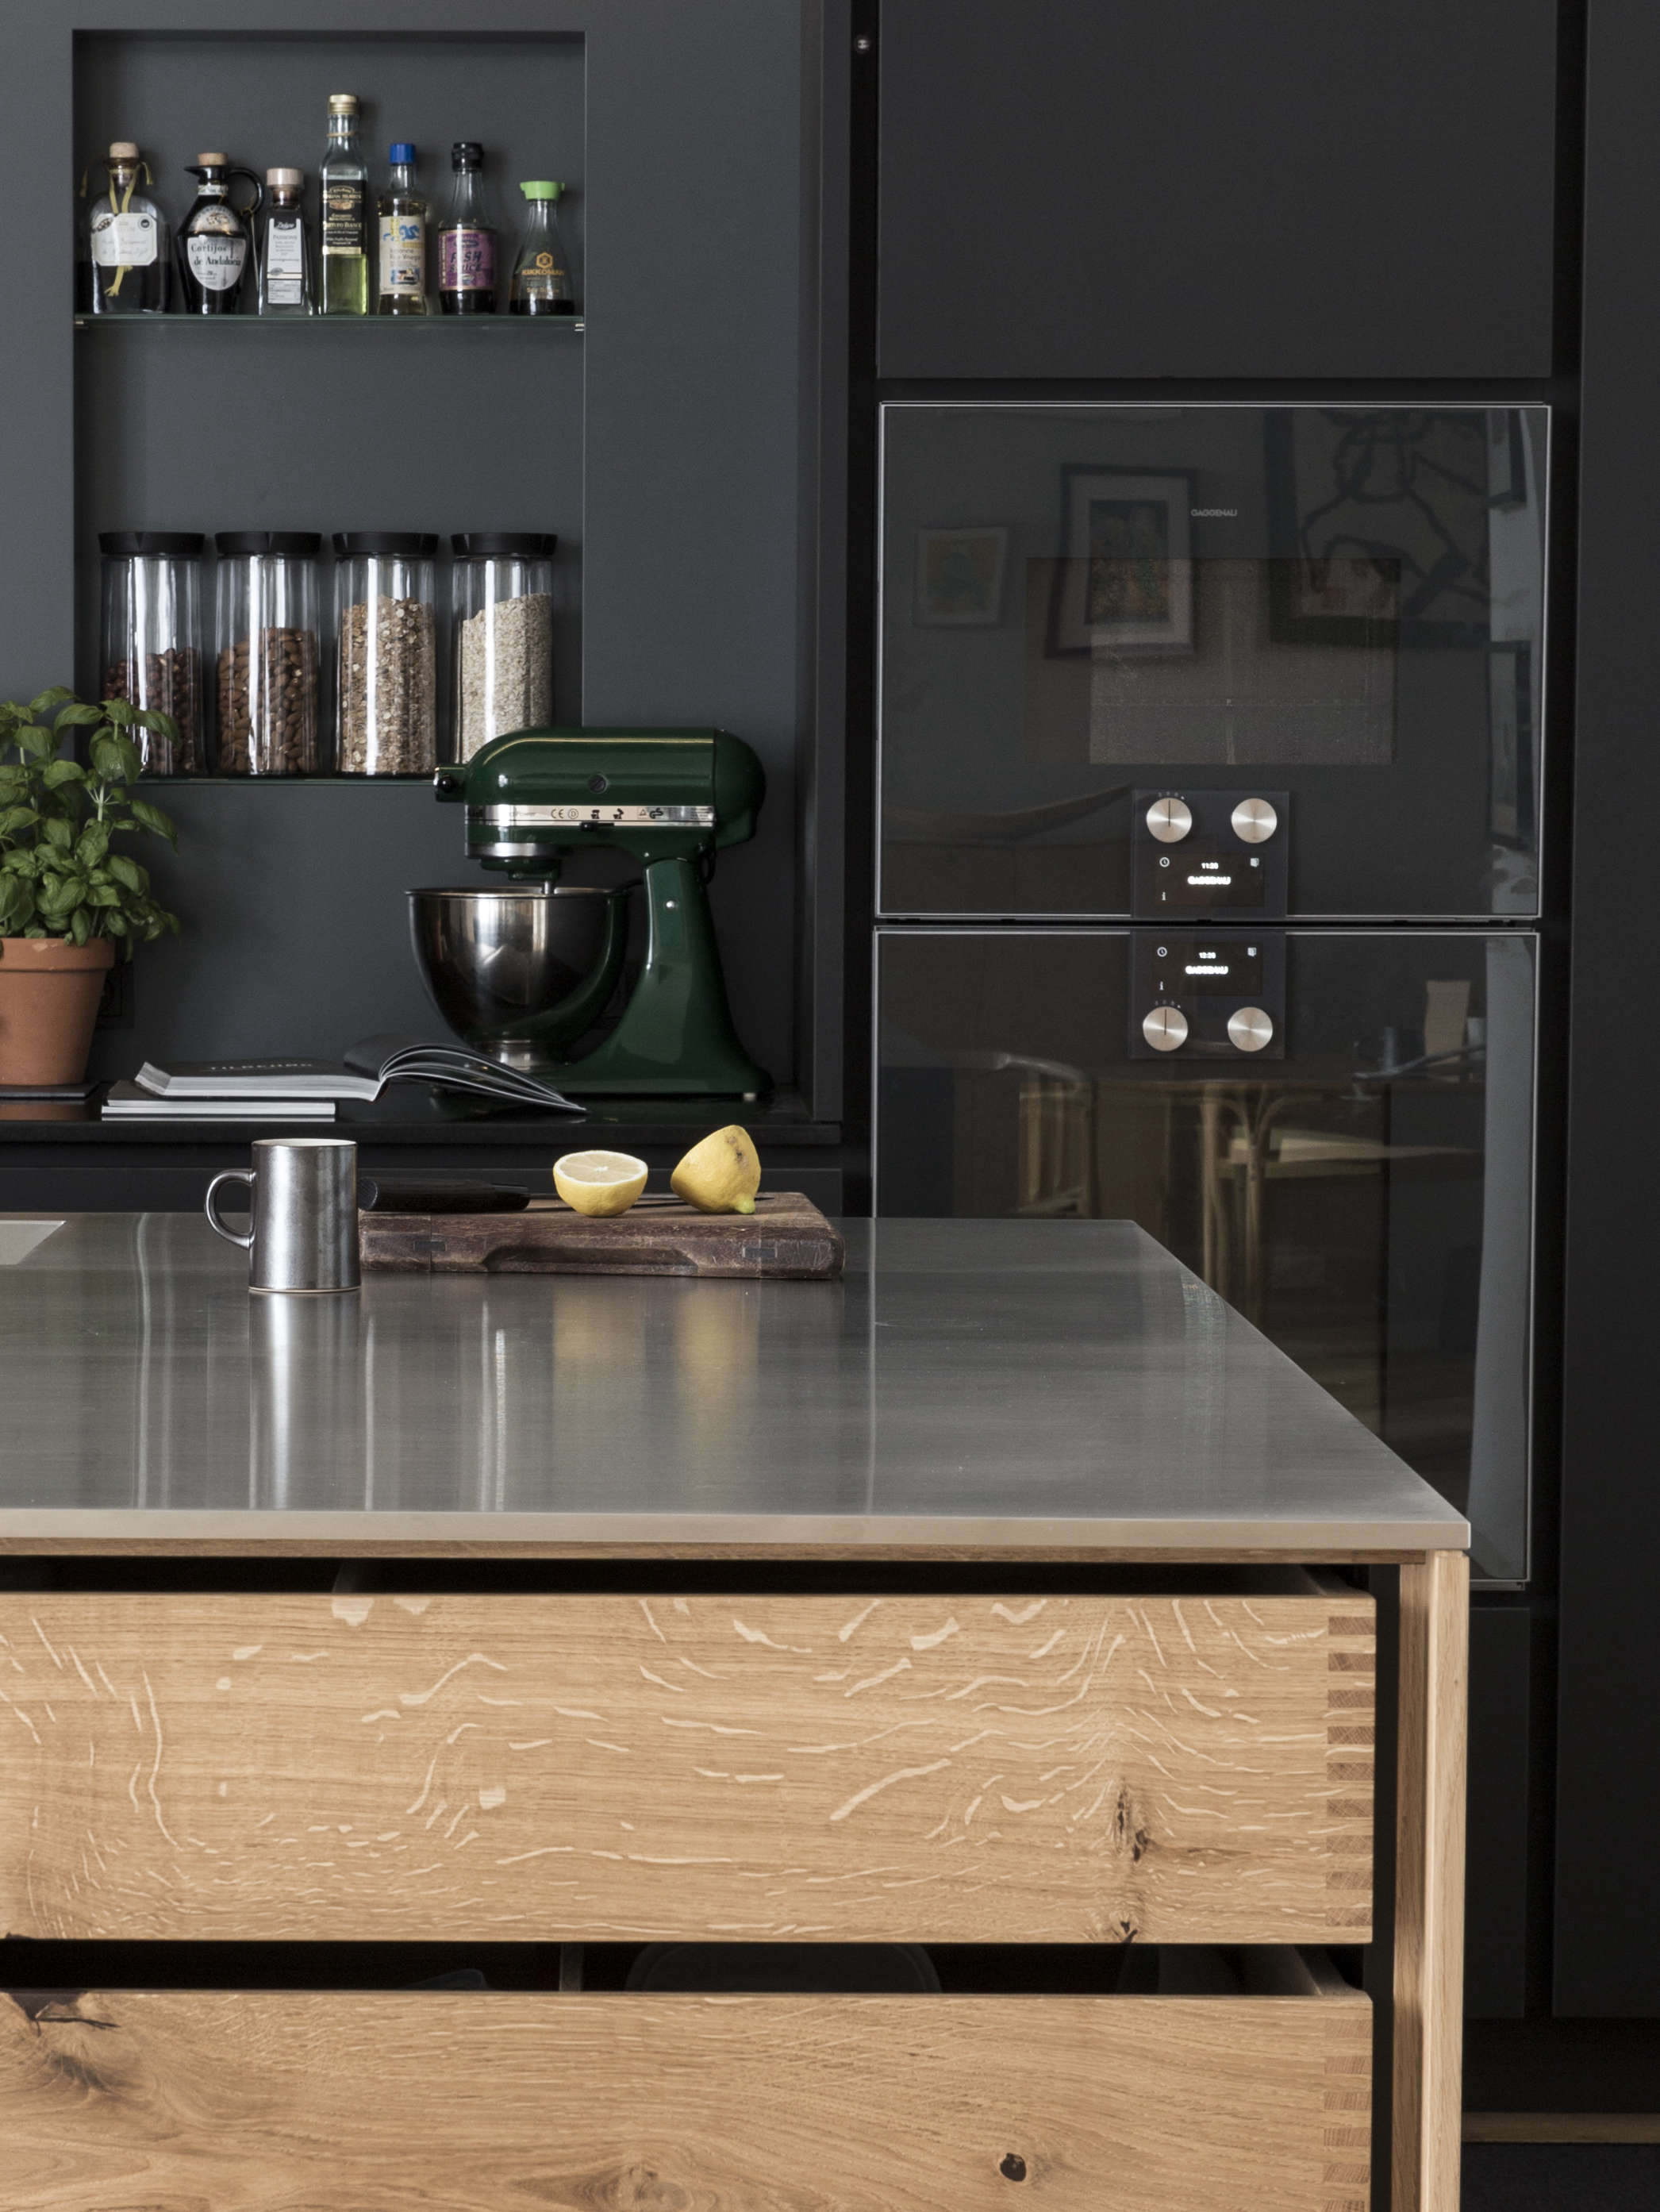 wood-drawers-modern-kitchen-black-cabinets-denmark-garde-Hvalsoe